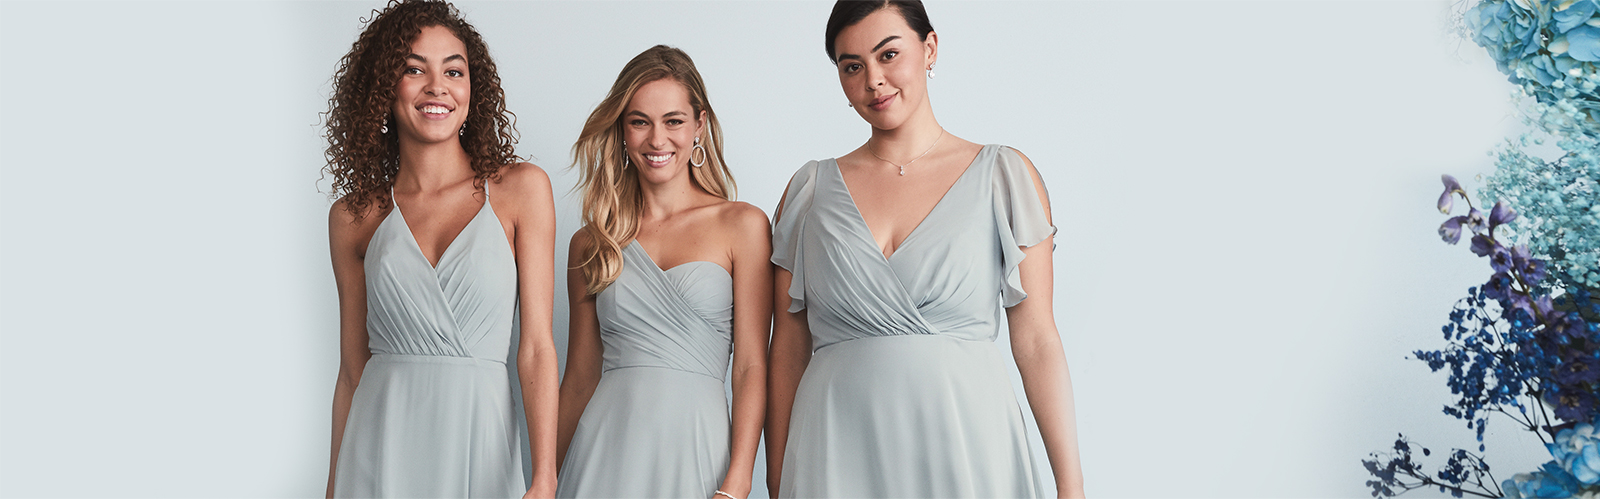 brides wearing dusty blue spring 2020 bridesmaid dresses.